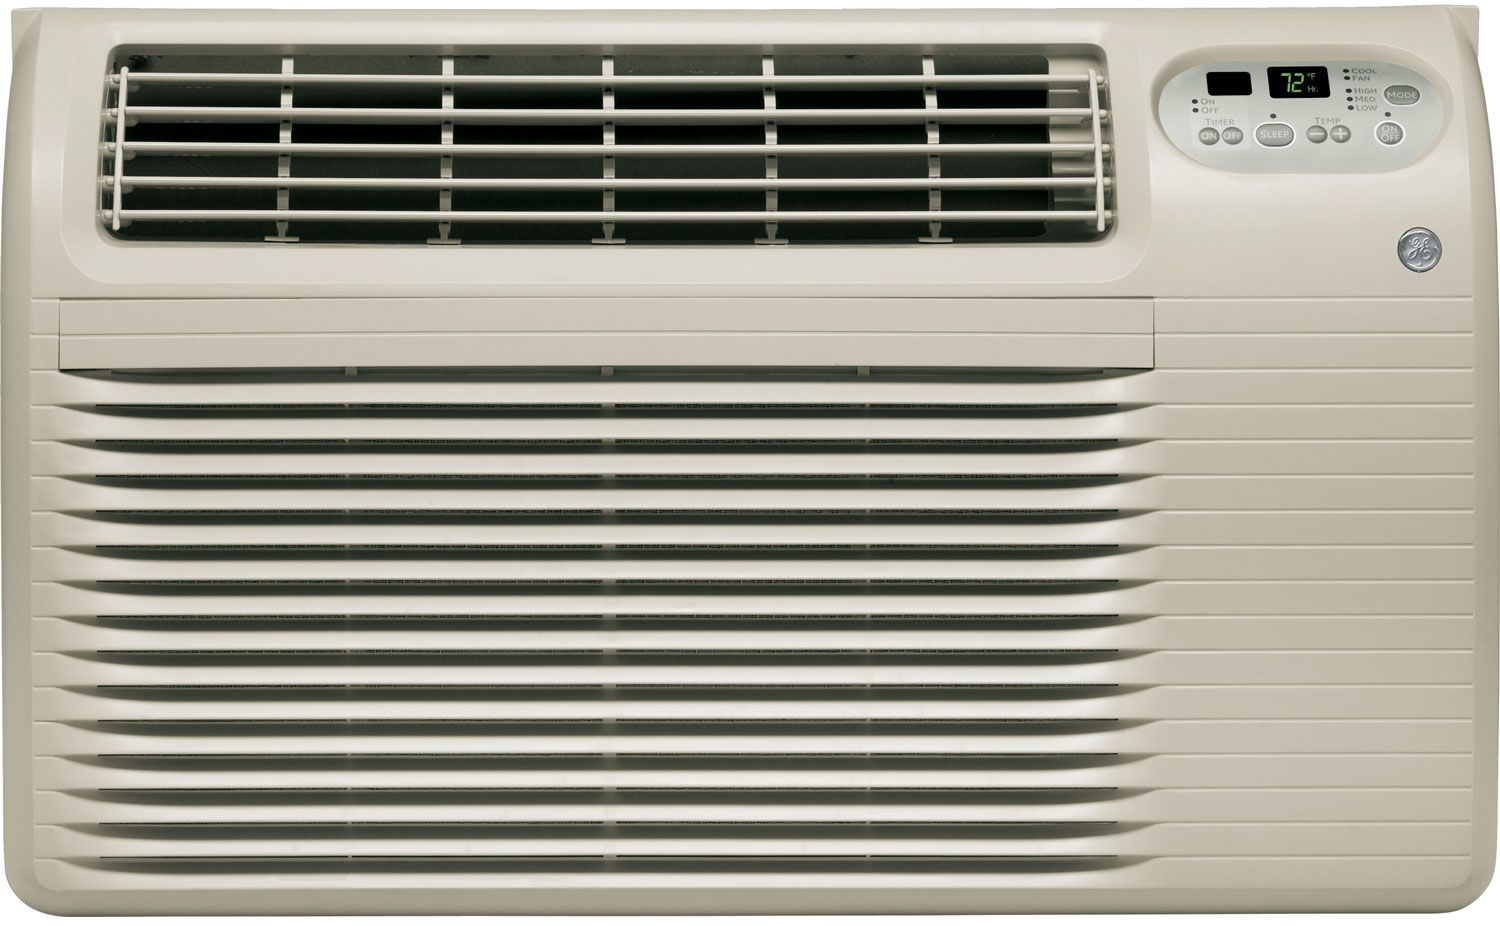 #756D56 GE 10 300 BTU 9.8 EER 230V Wall Air Conditioner  Highly Rated 12039 Ge Air Conditioner Wall Unit wallpapers with 1500x926 px on helpvideos.info - Air Conditioners, Air Coolers and more